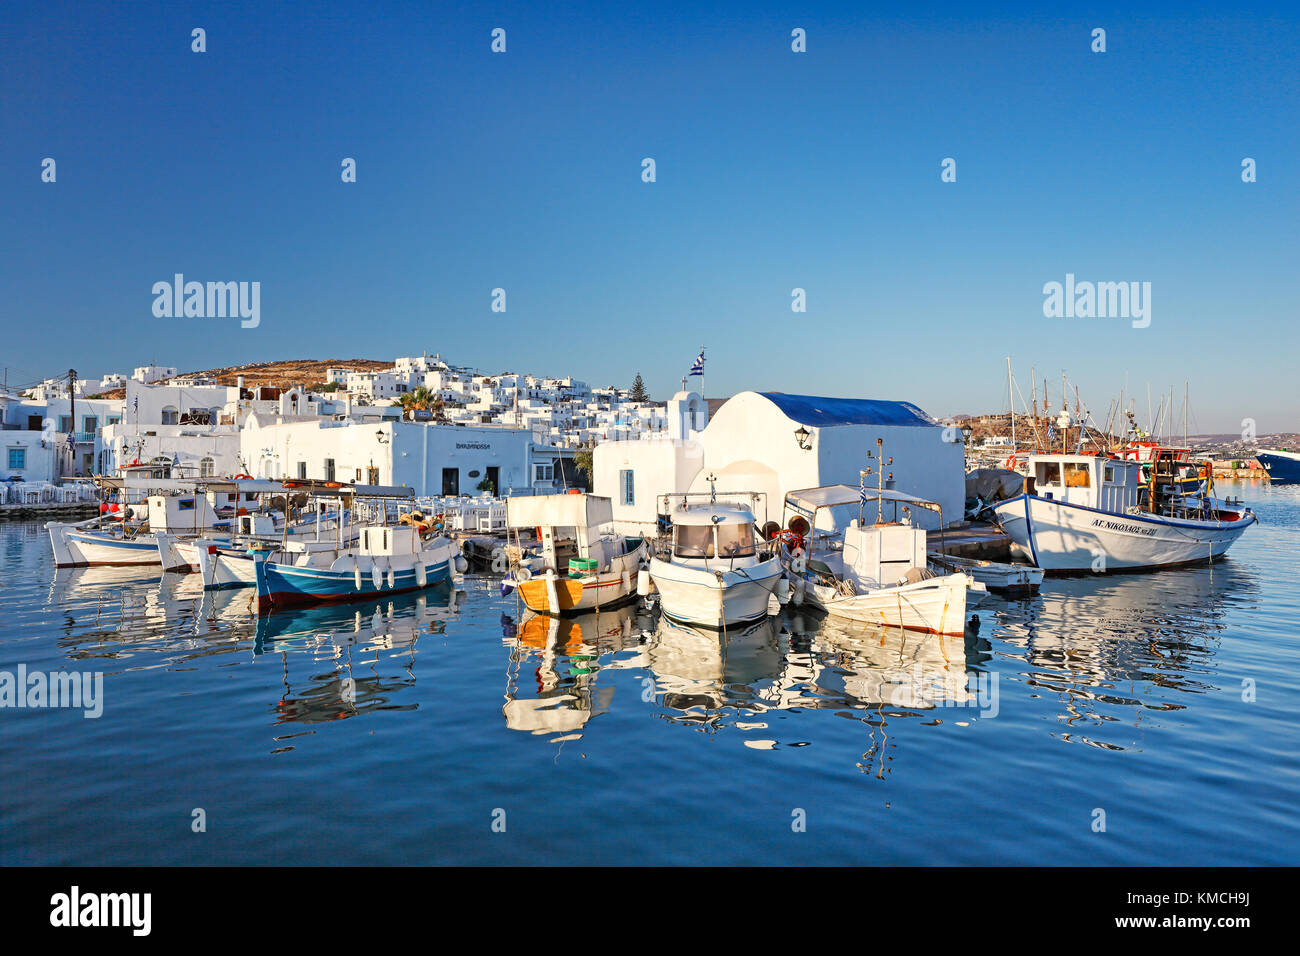 Boats at the port of Naousa in Paros island, Greece - Stock Image